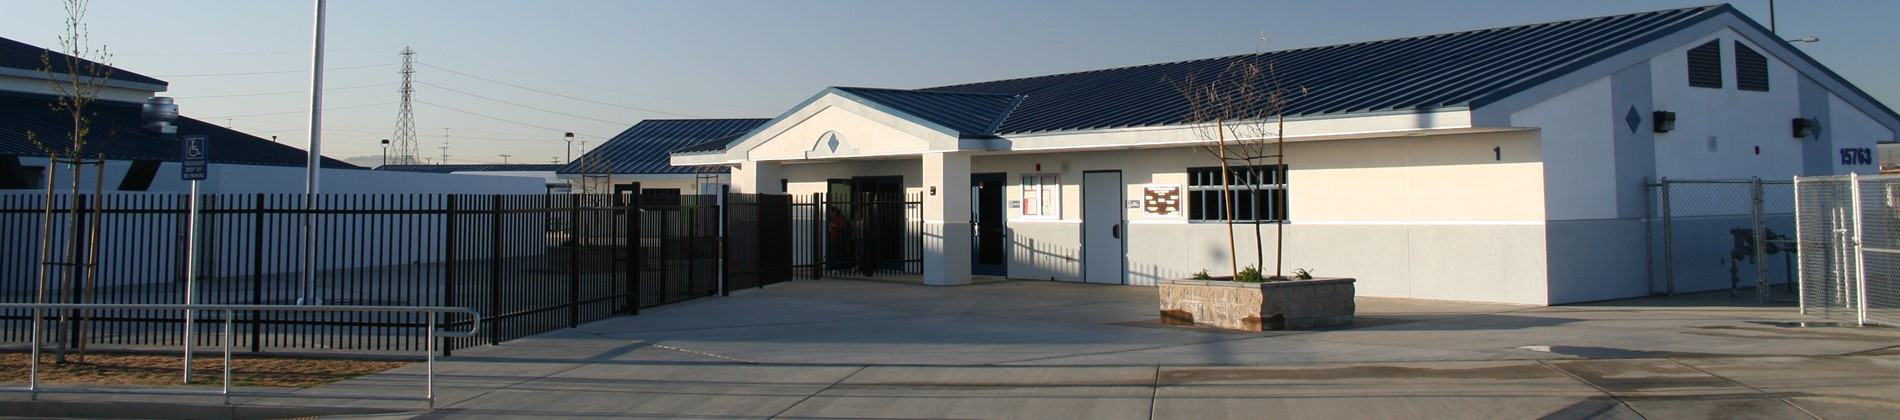 West Creek Elementary Front Entrance